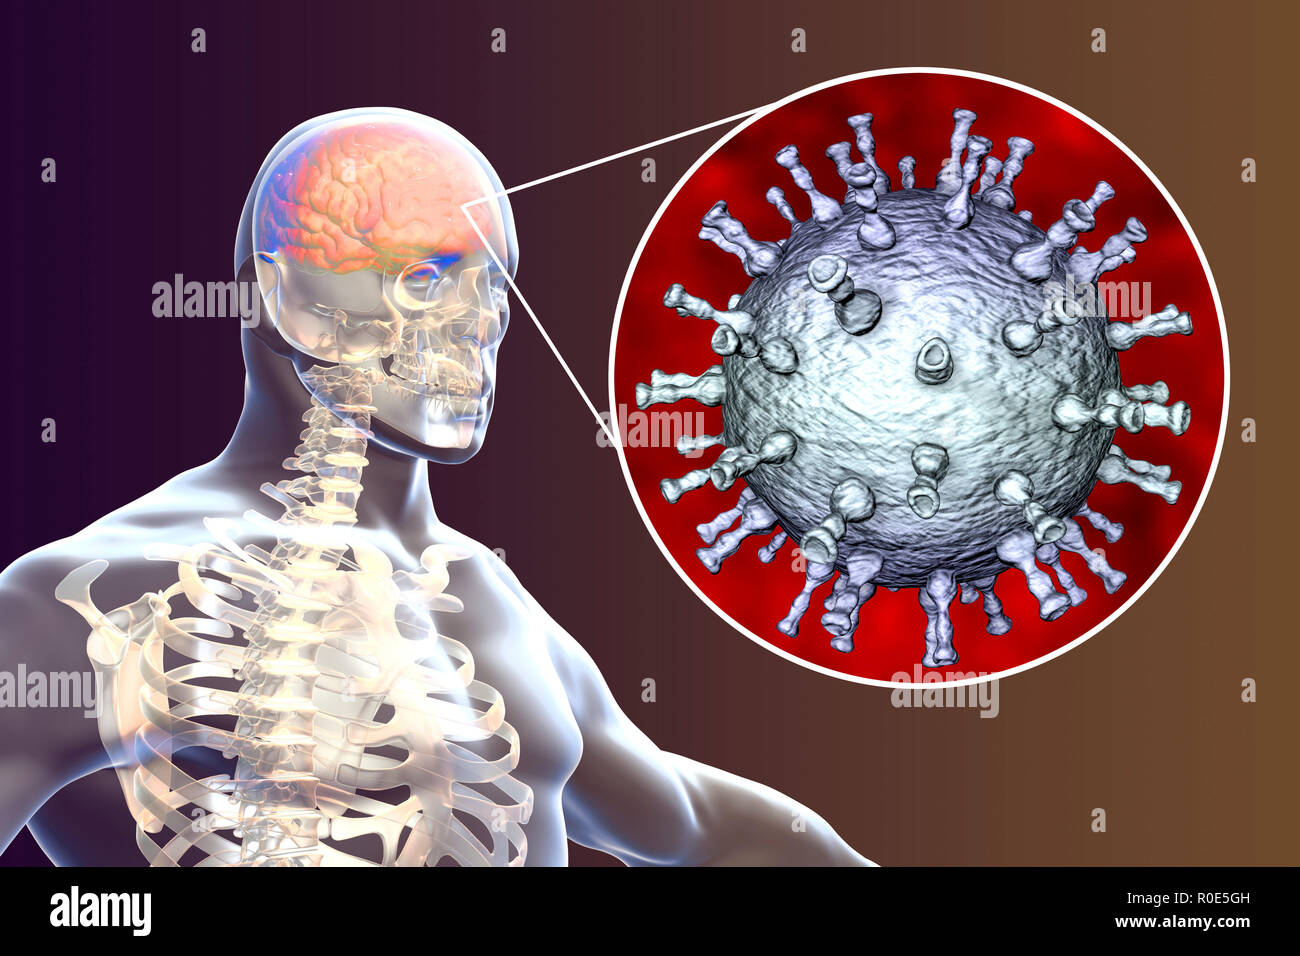 Shingles Infection Stock Photos & Shingles Infection Stock Images